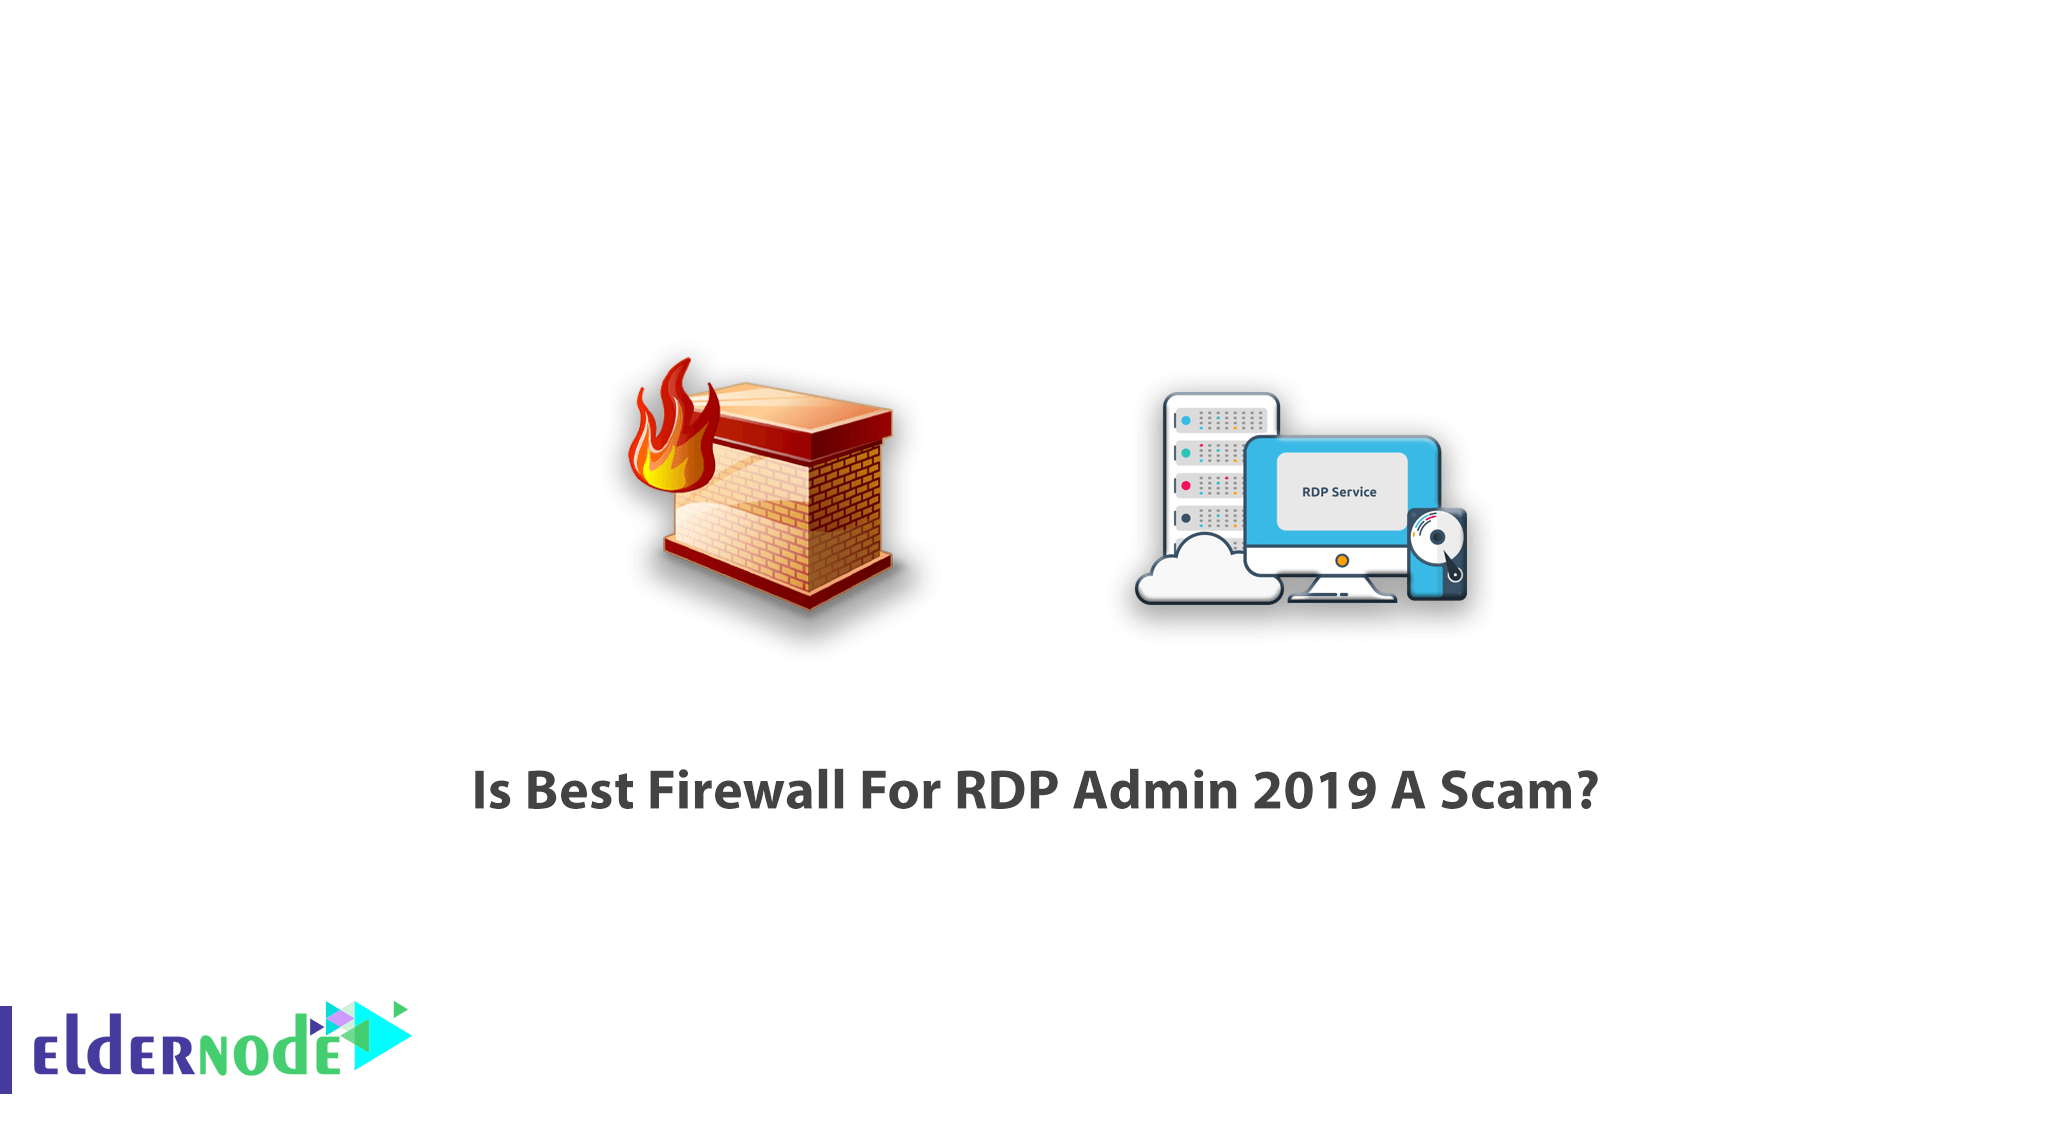 Is Best Firewall For RDP Admin 2019 A Scam